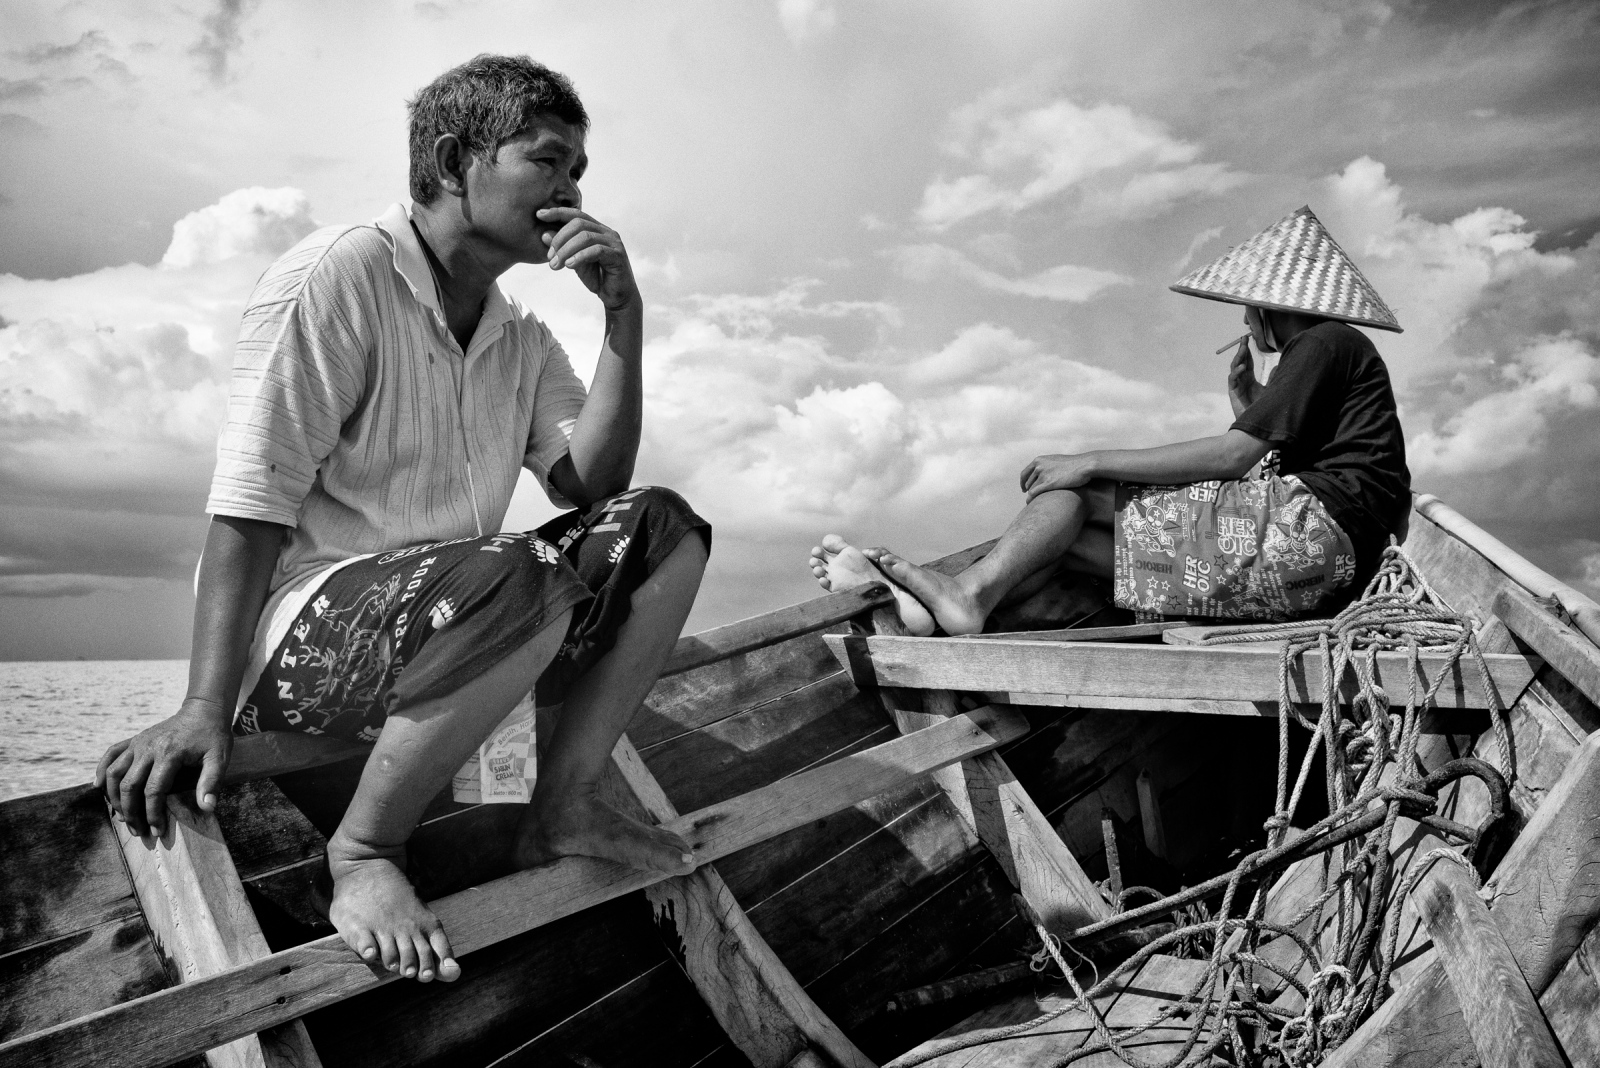 Roaidi and his son Kuruniawan take rest on his fishing boat at West Bangka sea, Indonesia onMay 7, 2016. Roaidi, a 50 years old fisherman who is a native to the area claims that the ocean is seriously damaged by offshore tin mining. He used to get 25~35kg of fishes per day in 1 miles from the shore, but he has to sail to 25 miles from the shore to get that amount.